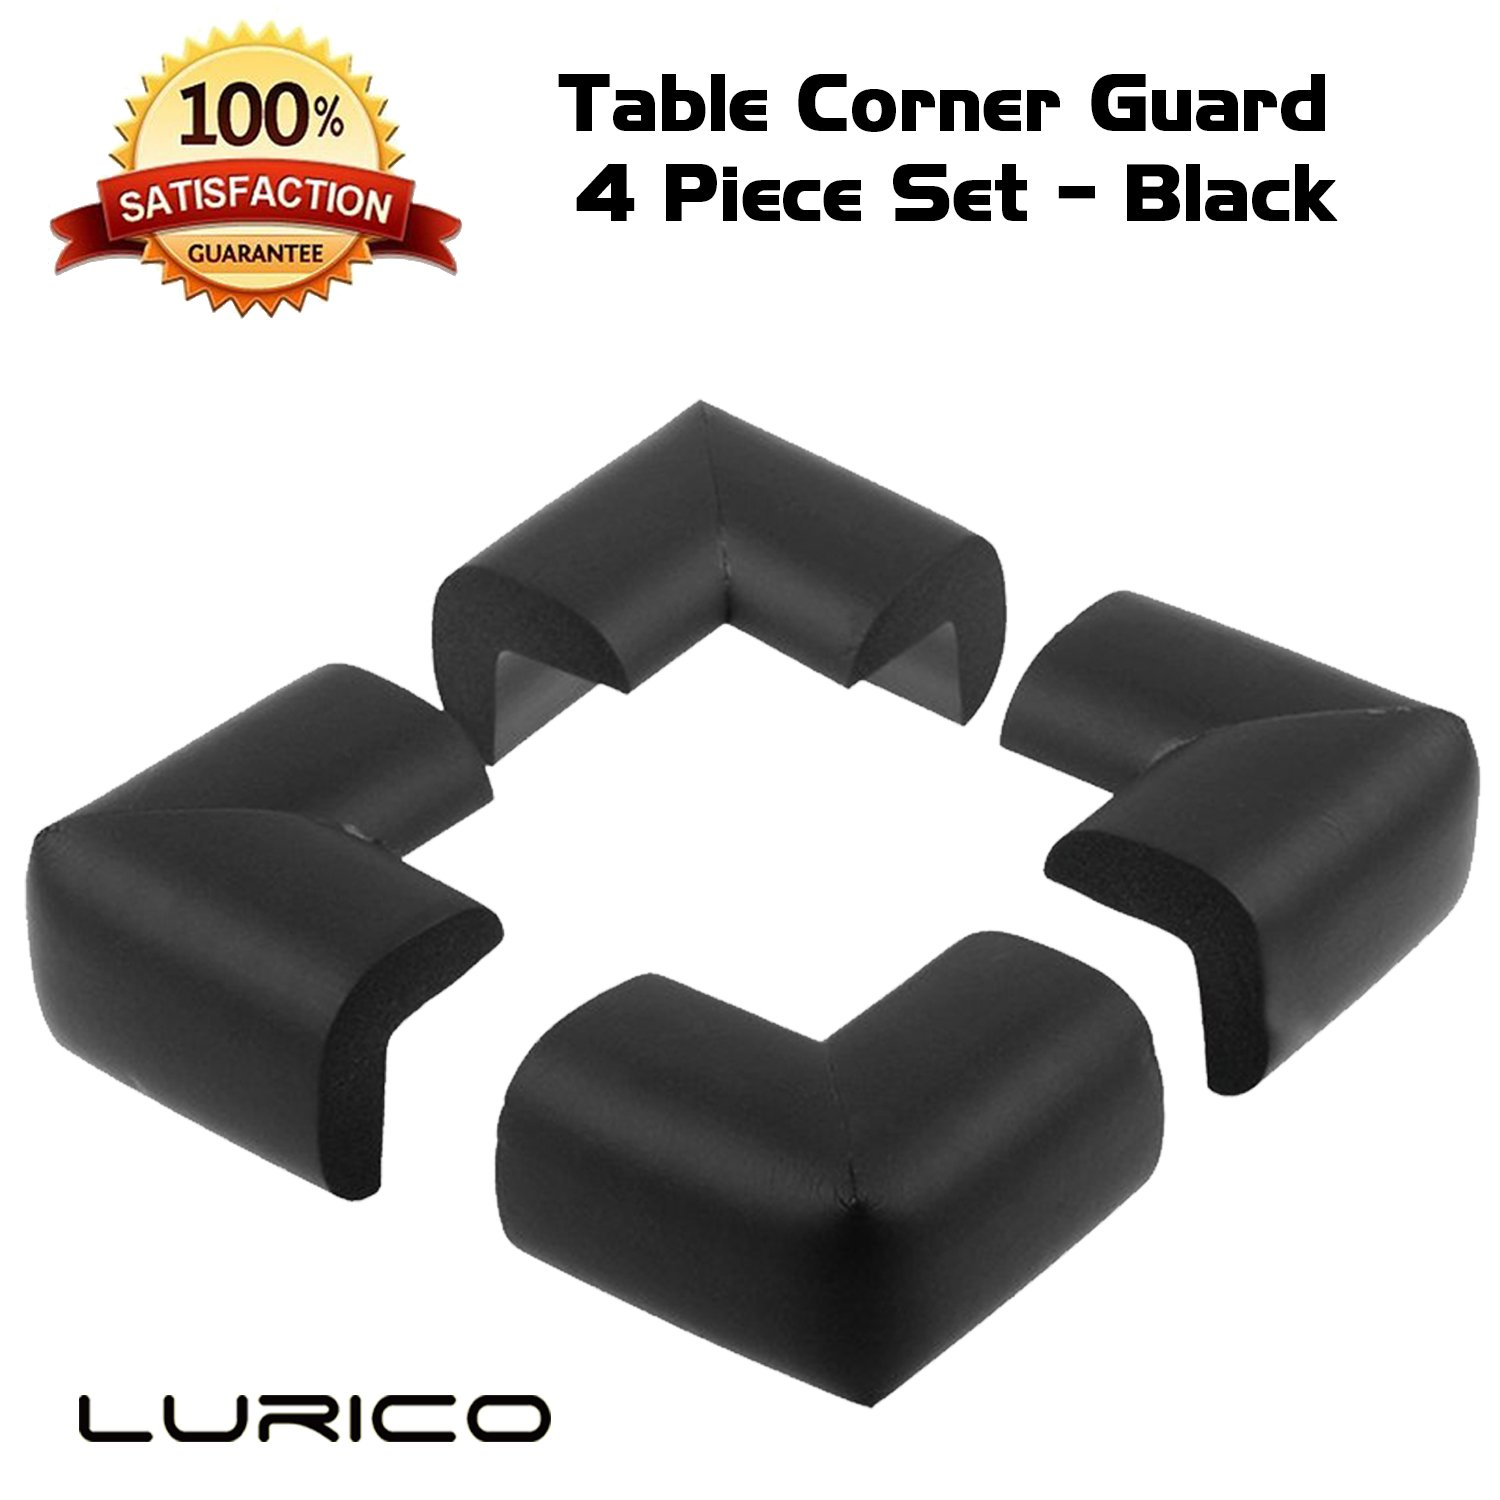 furniture corner pieces. LURICO 4 Pieces Set Corner Guard Home Furniture Safety Bumper Foam Toddler Baby Proof Table Protector